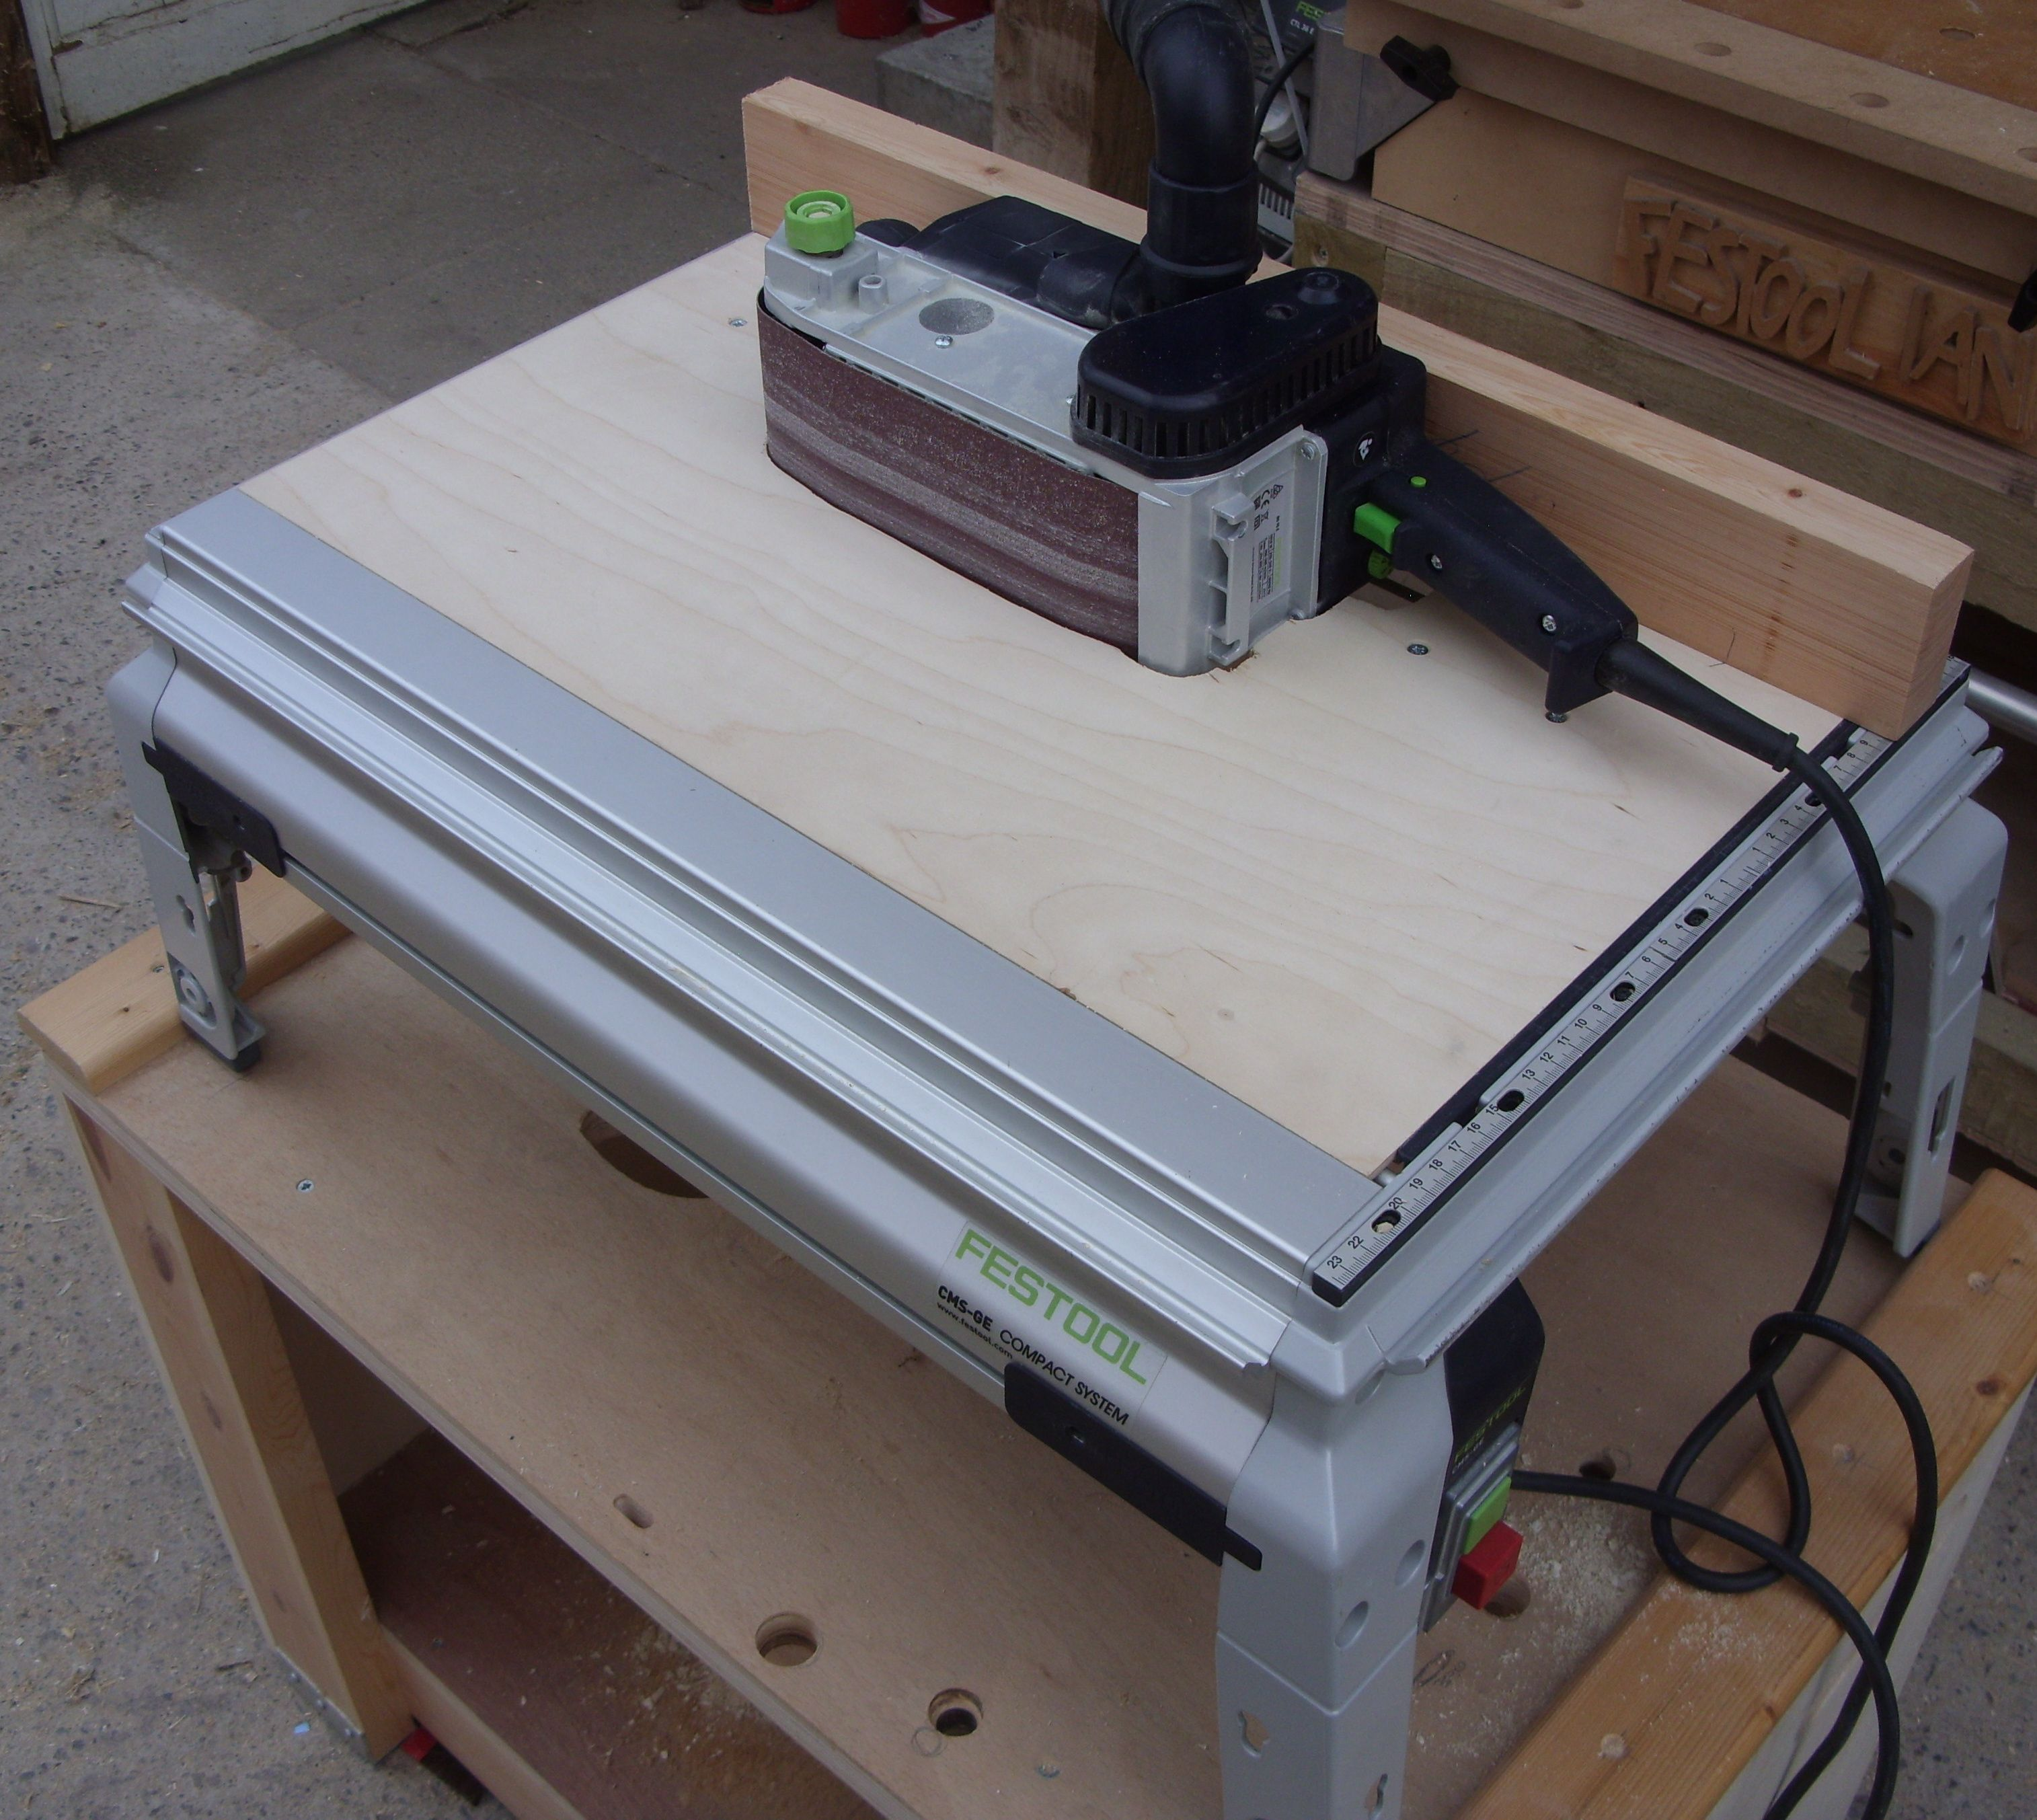 Http Festoolownersgroup Com Festool Jigs Tool Enhancements Cms Modules Belt Sander Jigsaw Belt Sander Festool Festool Cms